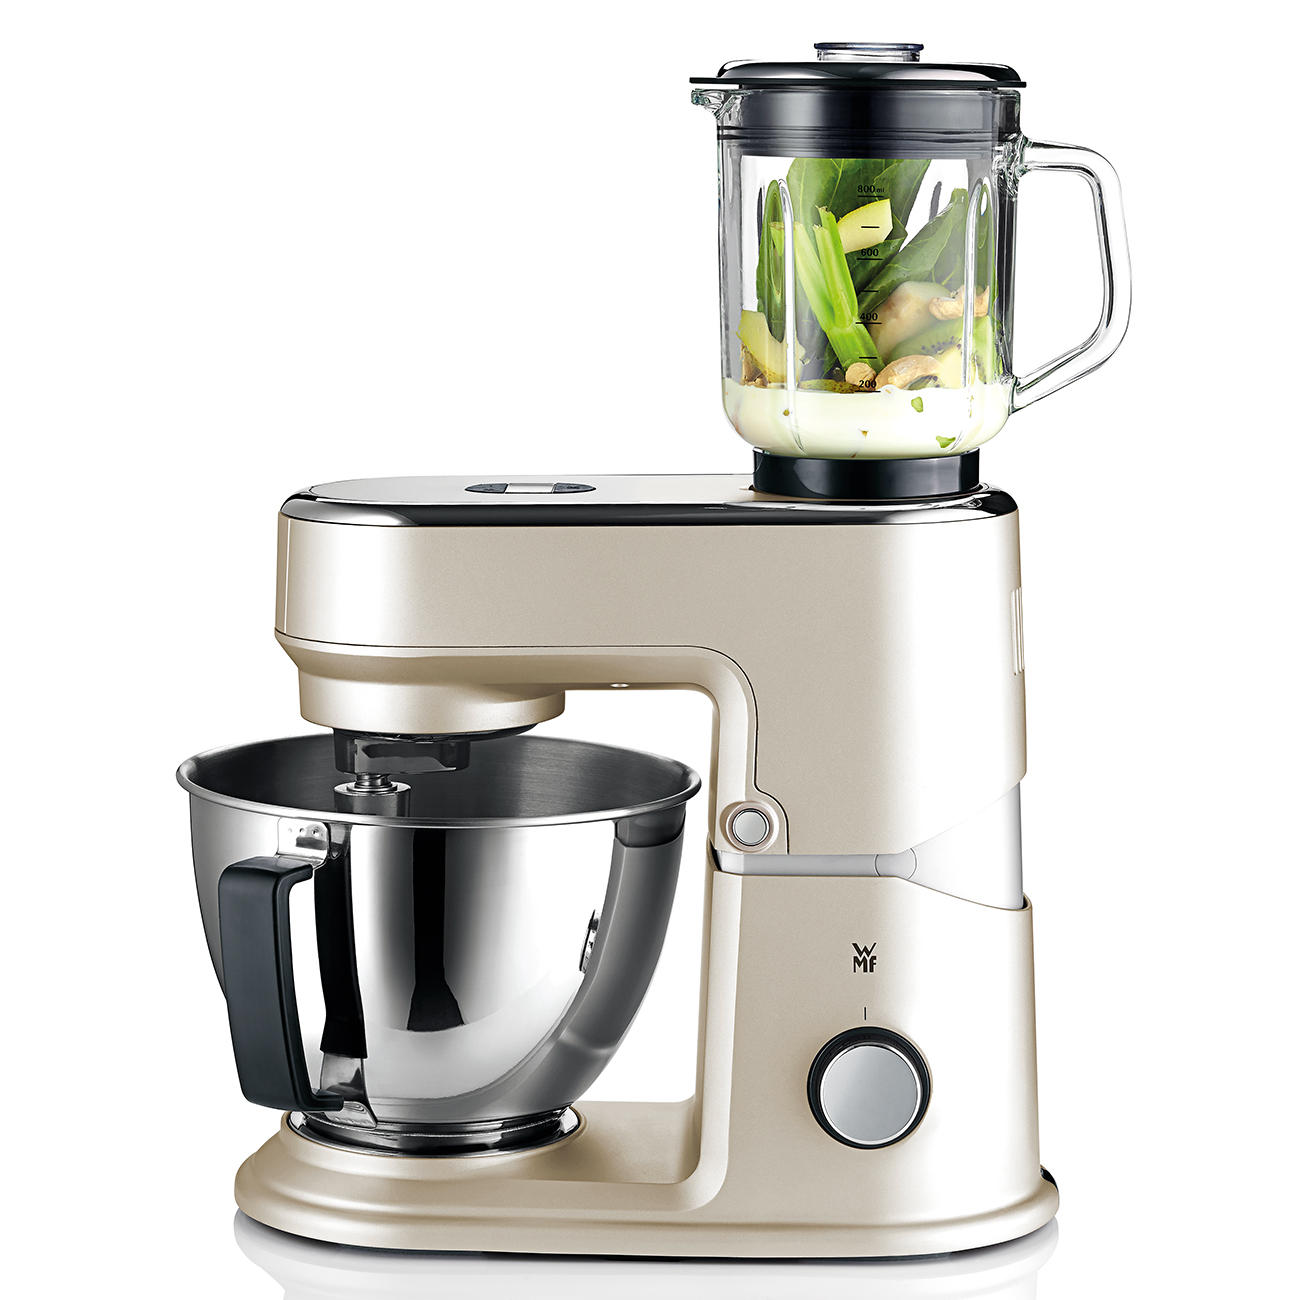 Food Processor For Shakes